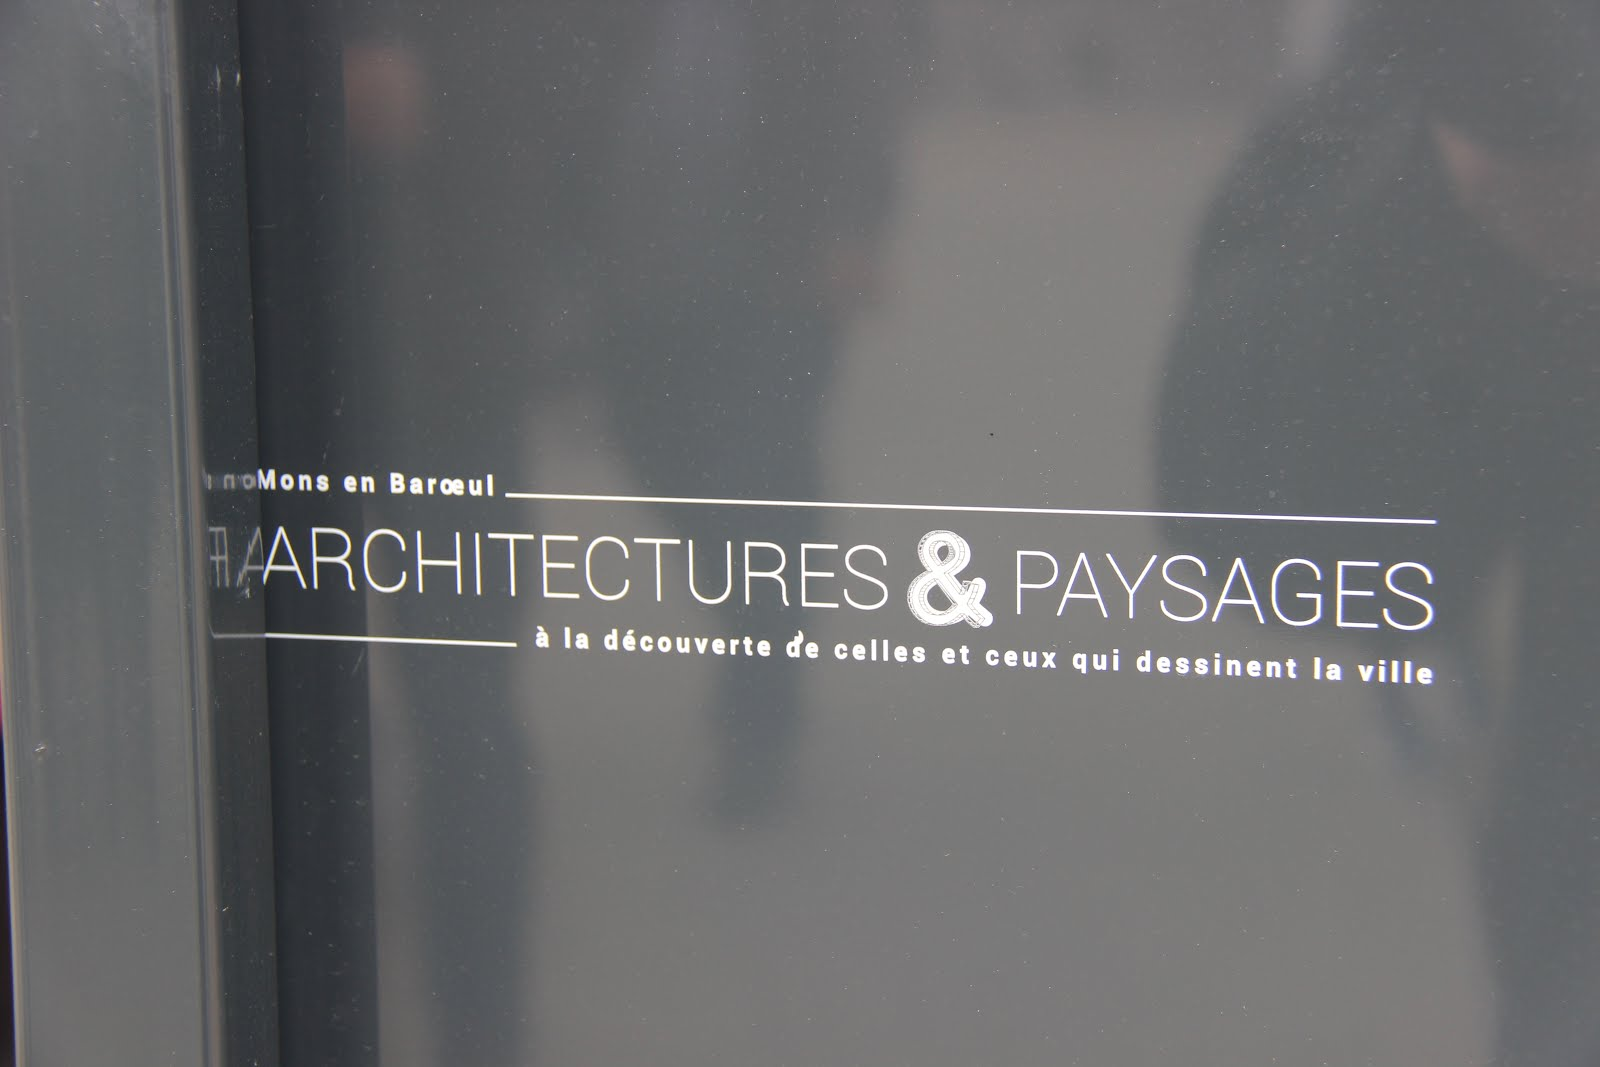 Architectures & paysages